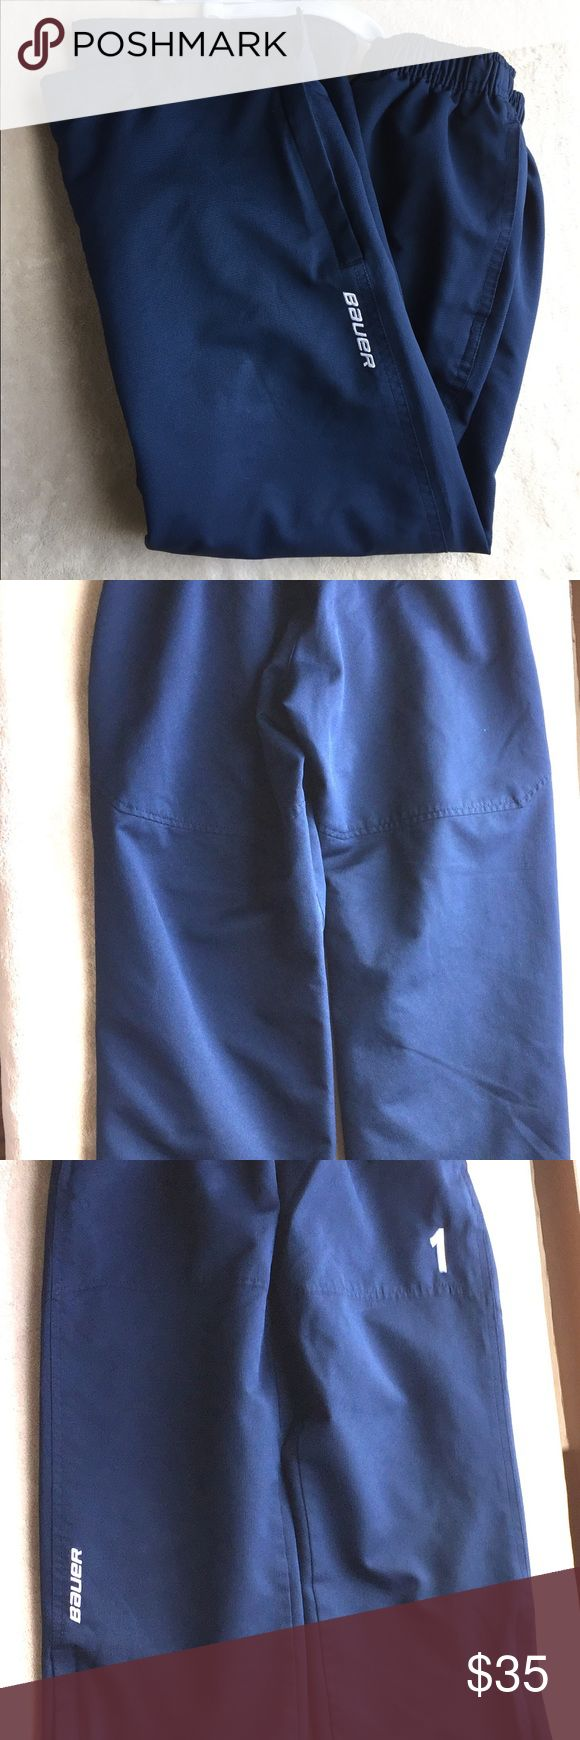 Bauer Boys Hockey Pants Size Sm Authentic Bauer Hockey Pants Boys Size Small.  Navy Blue.. In perfect condition except the number 1 is embroidered on the front. These were purchased by us and worn by our son. Please check out our other listings! Bauer Bottoms Sweatpants & Joggers